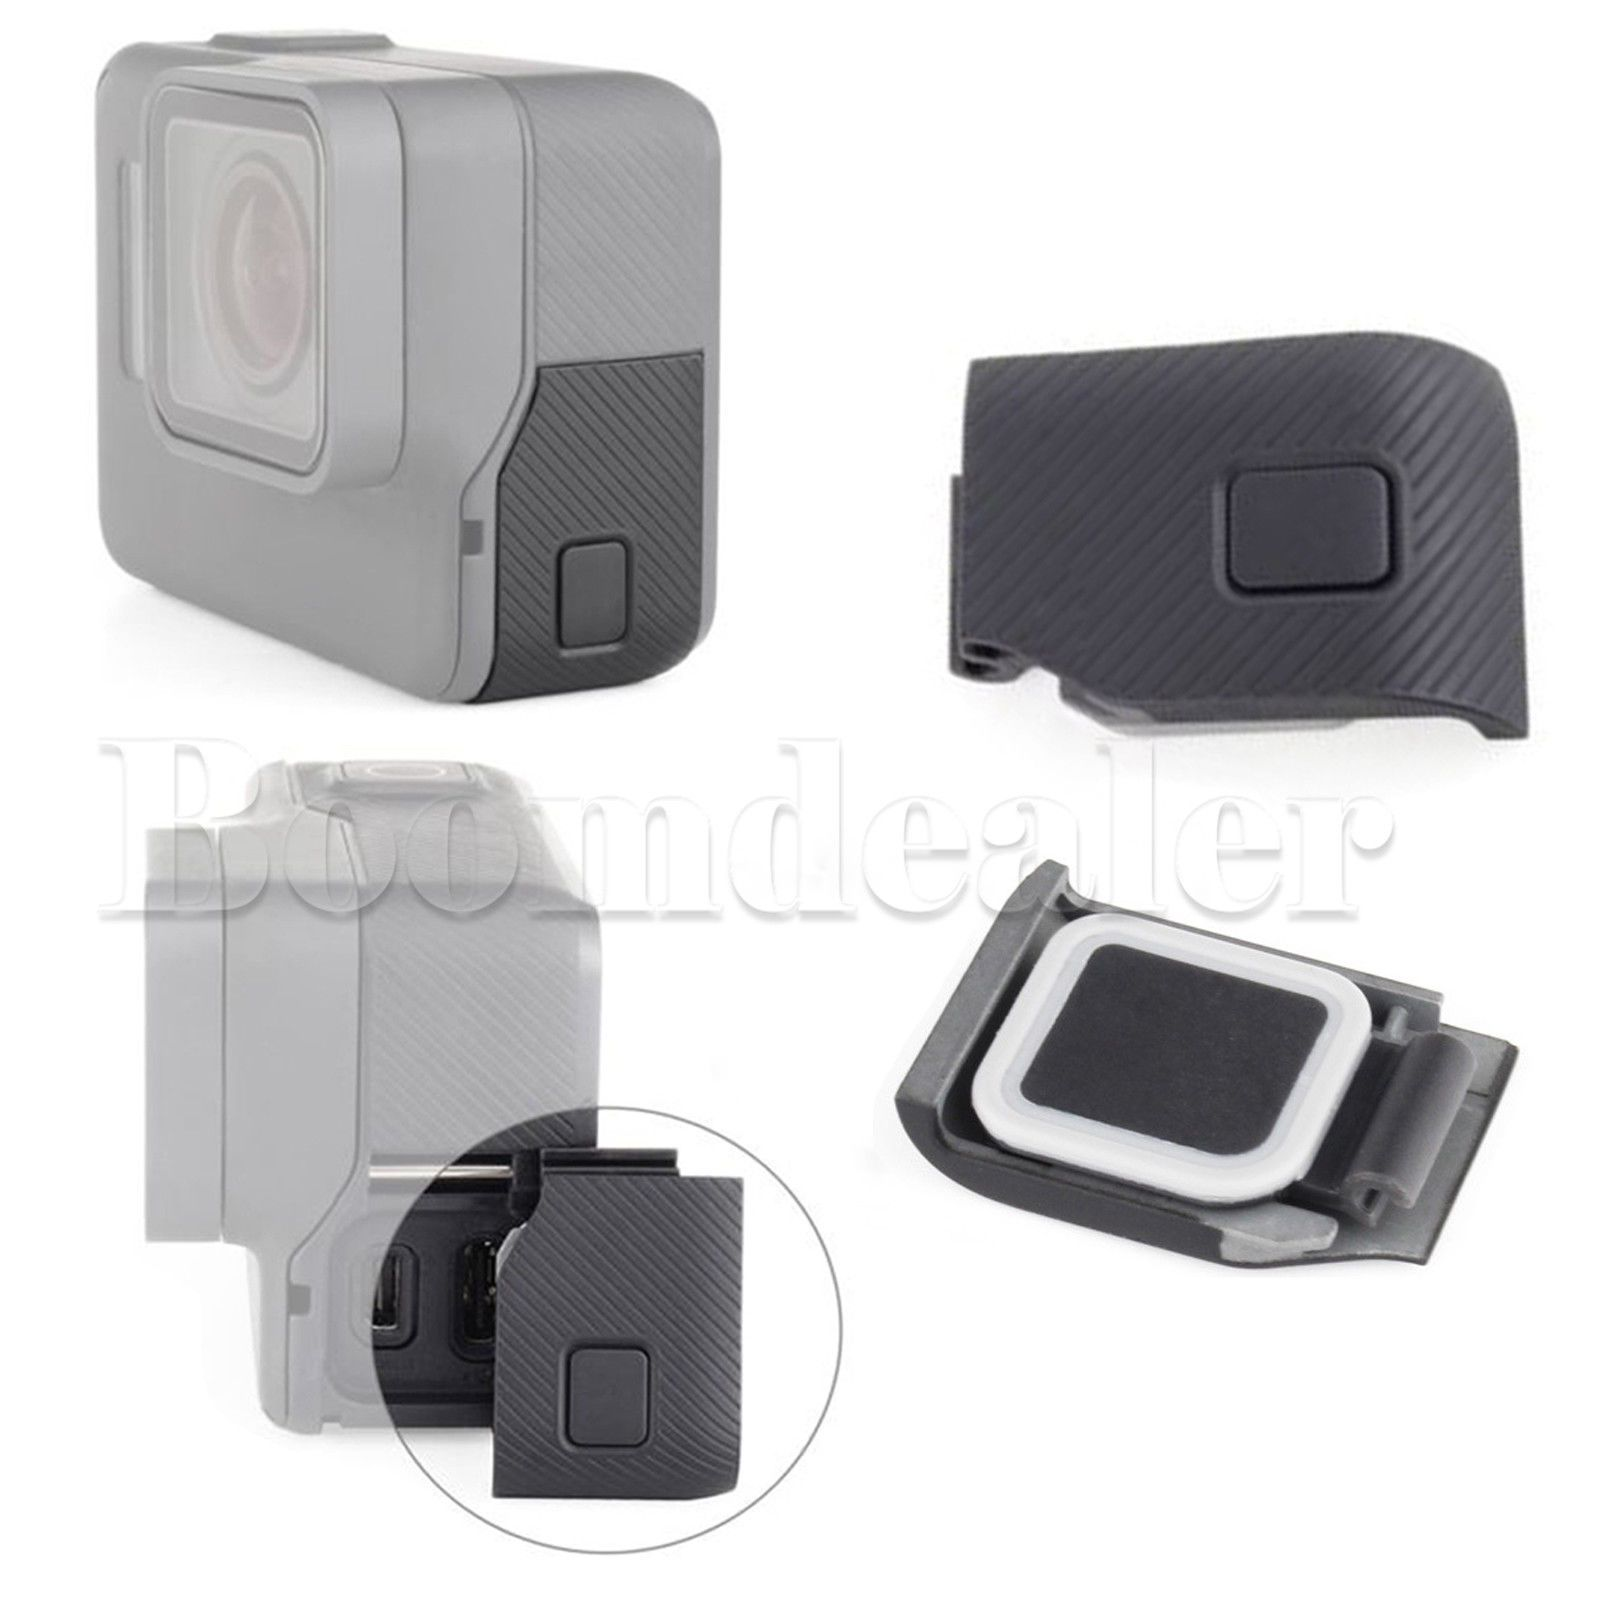 6 63 Gbp Replacement Side Door Usb C Hdmi Cover Case Cap Hat Repair Part For Gopro Hero 5 Ebay Electronics With Images Gopro Hero 5 Case Cover